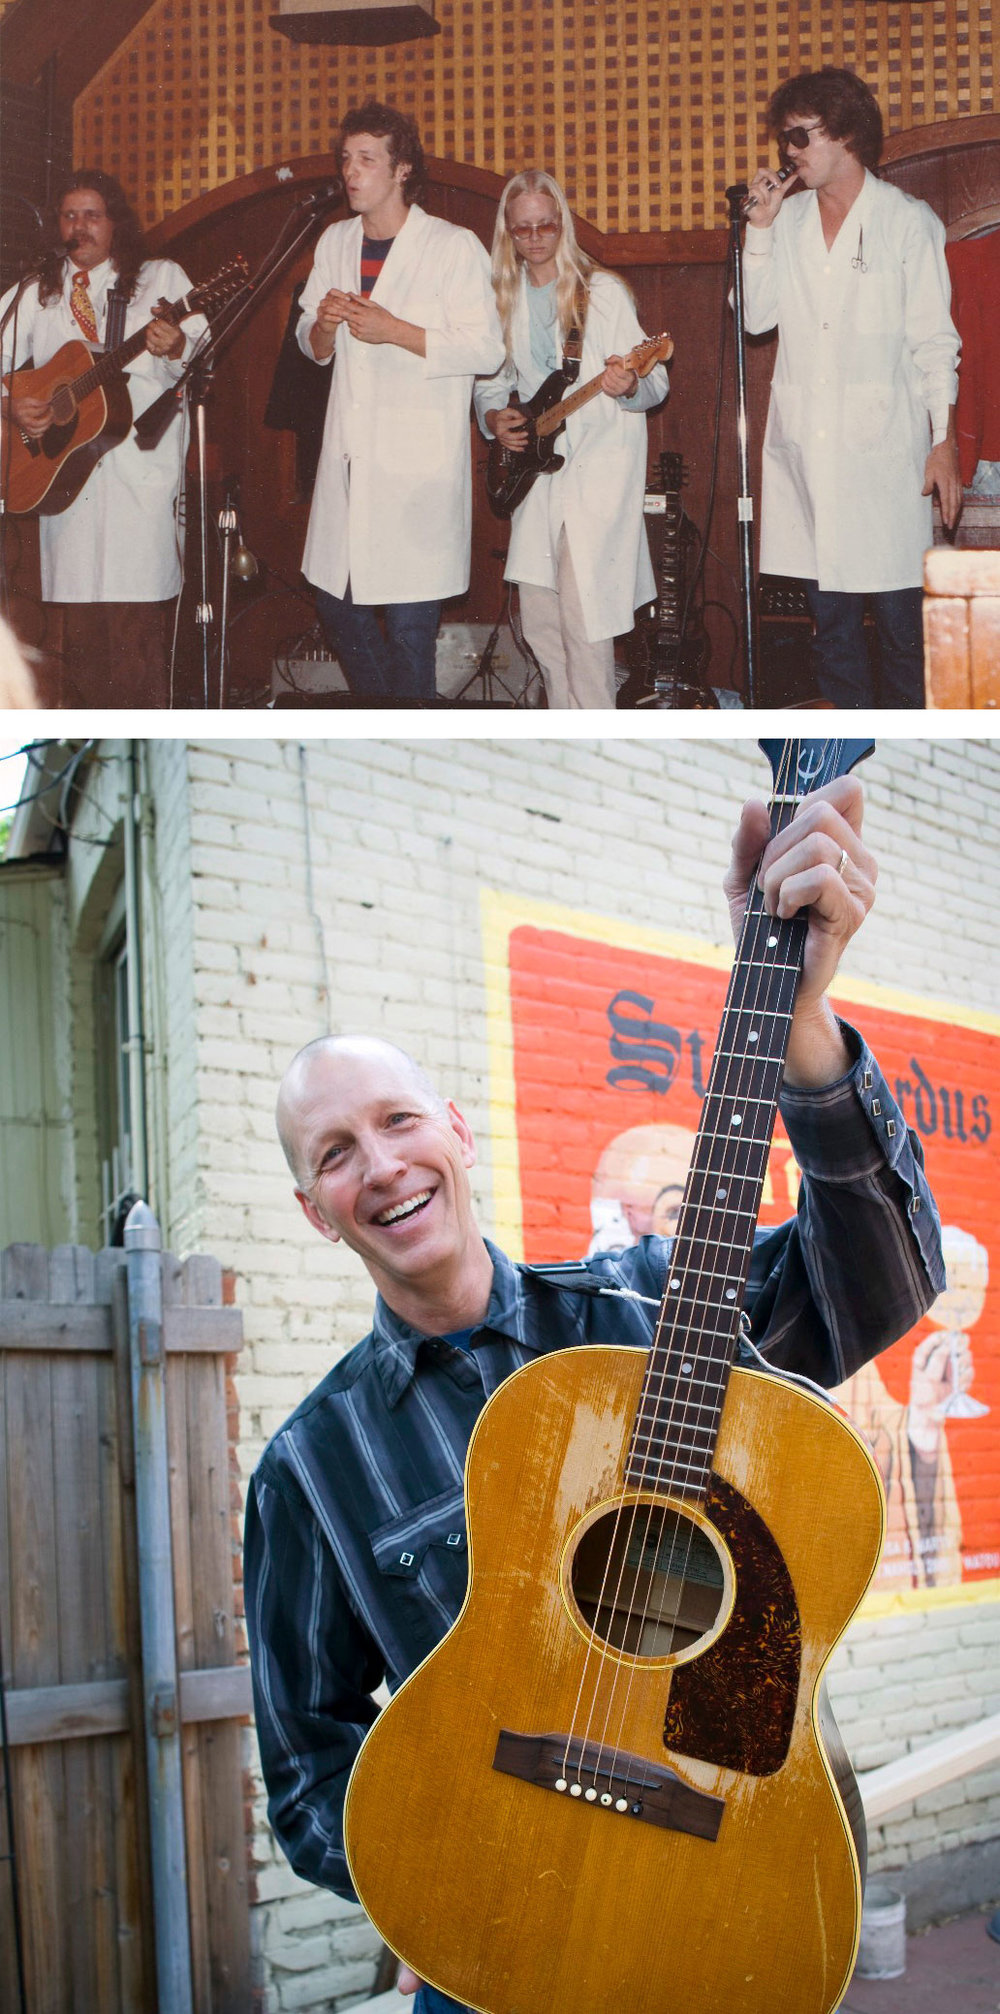 Interviewee and local musician Marty Jones pictured back in the day performing with his band CJ & the PHDs at Friar Tuck's (top) and continuing to rock today (bottom).